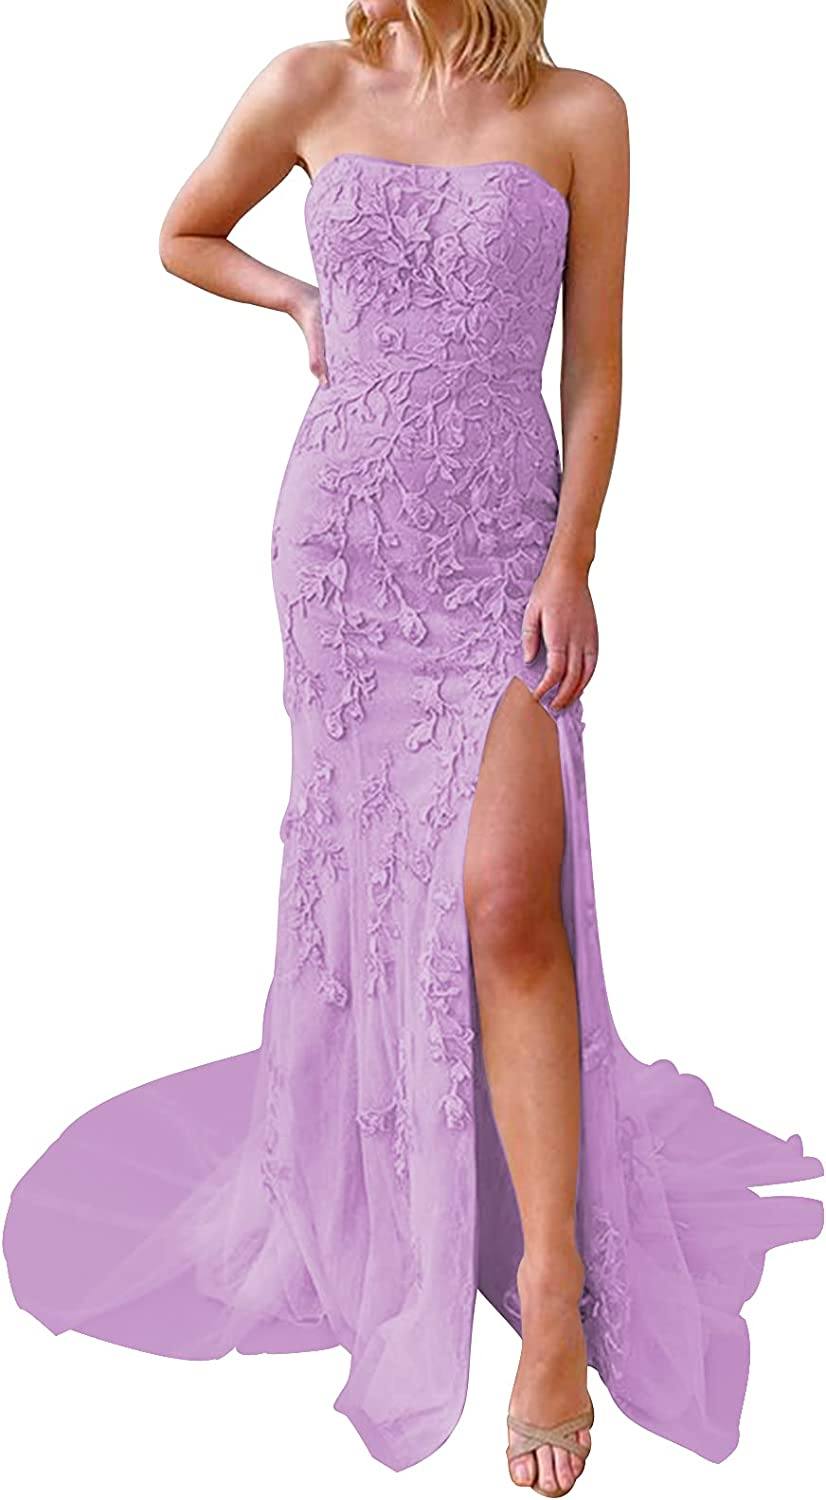 Prom Dress Lace Formal Evening Gowns Mermaid Strapless Evening Dresses with Split Prom Dresses